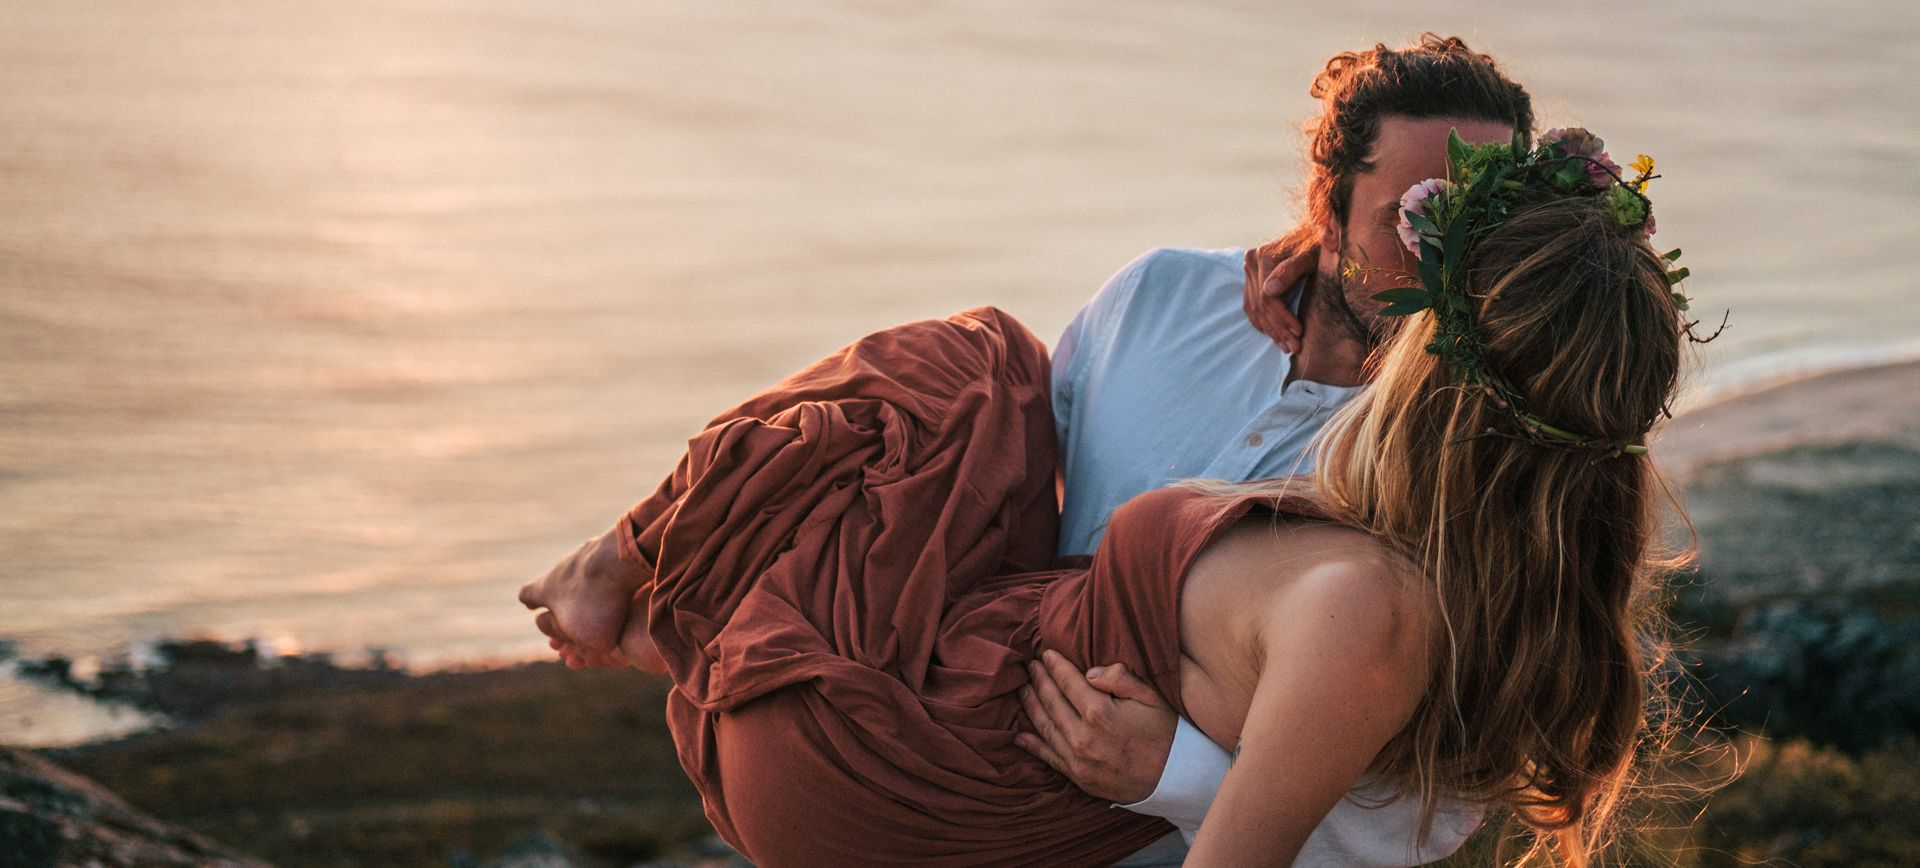 galicia beach wedding package in spain - complete 3 day adventure elopement